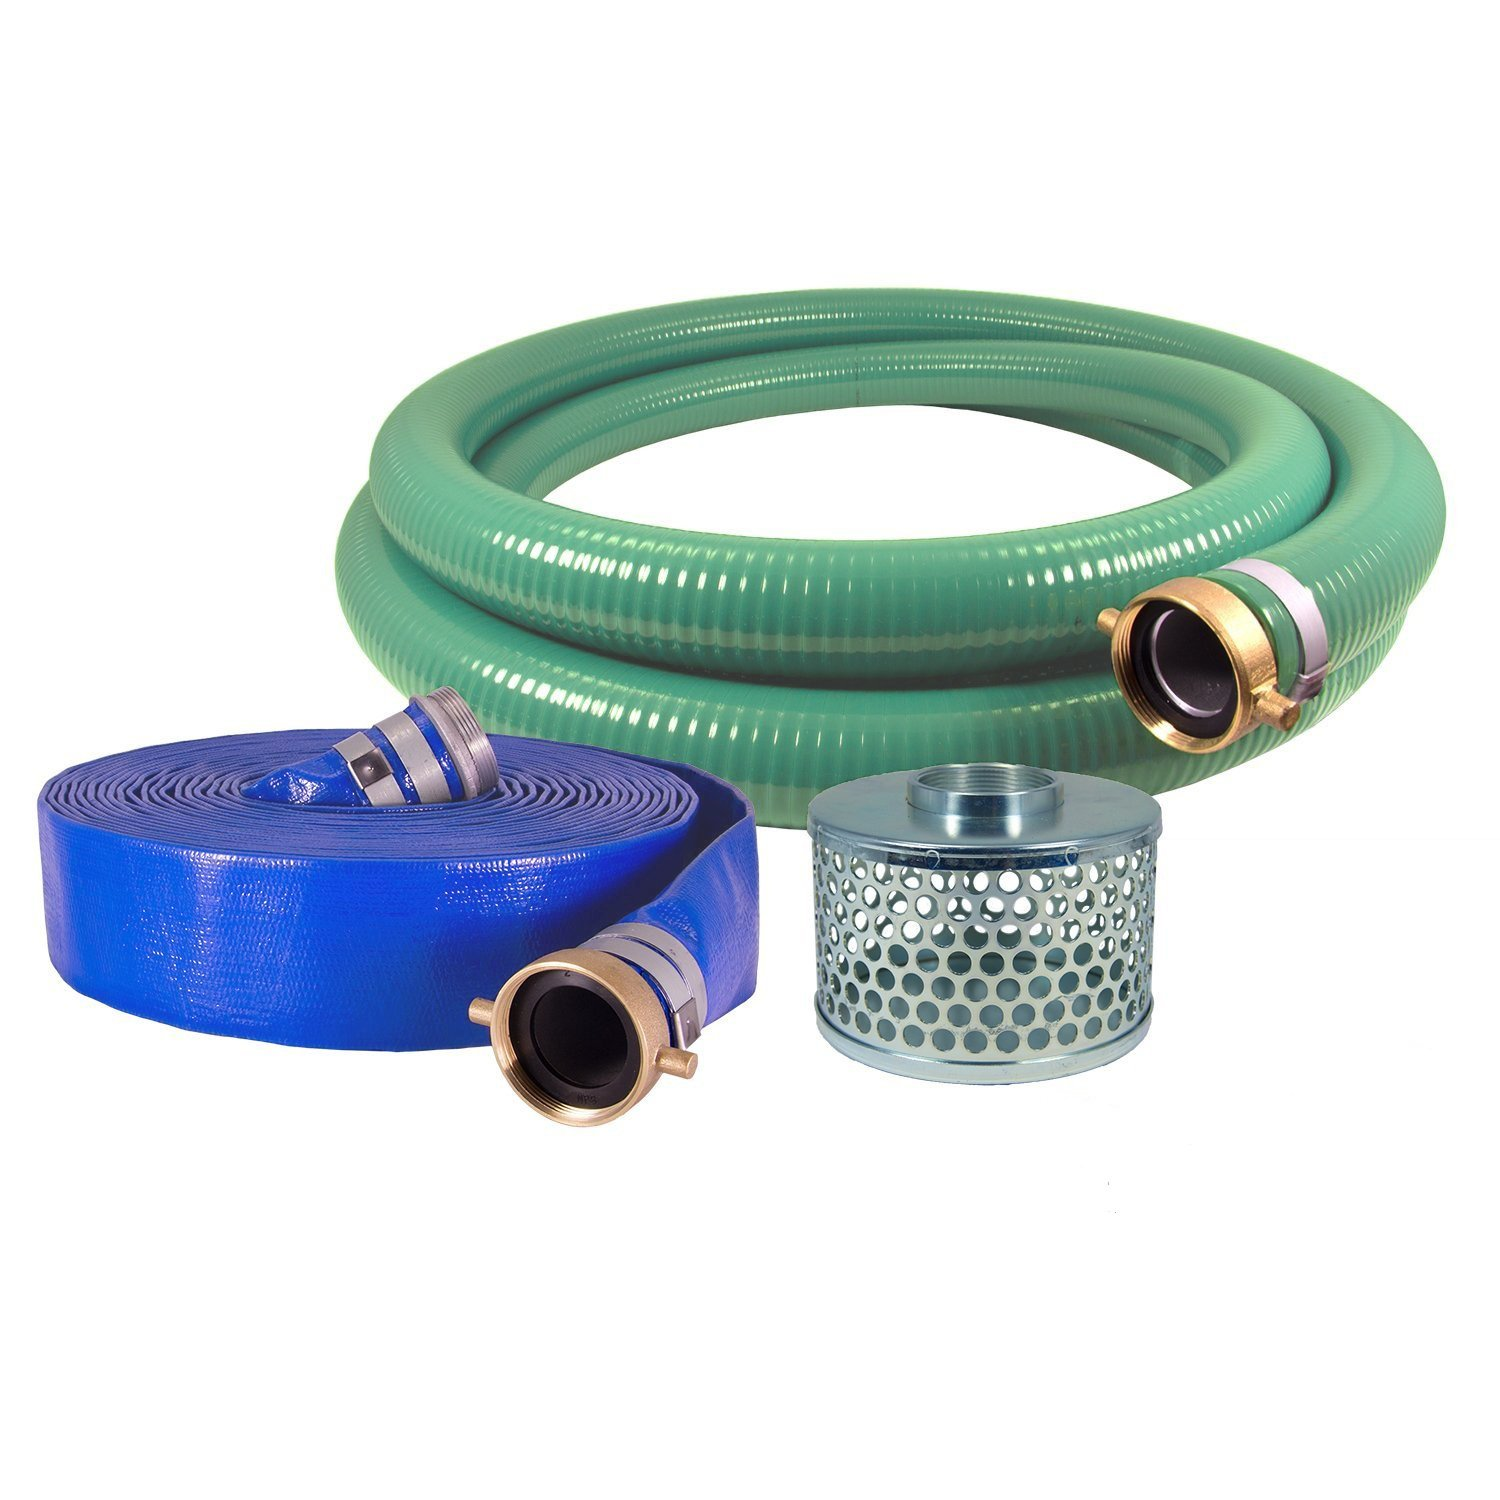 JGB Enterprises Eagle Hose PVC/Aluminum Water/Trash Pump Hose Kit, 3'' Green Suction Hose Coupled M x F WS, 3'' Blue Discharge Hose Coupled M x F WS, 29 Vacuum Rating, 70 PSI Maximum Temperature, 25' Length, 3 ID